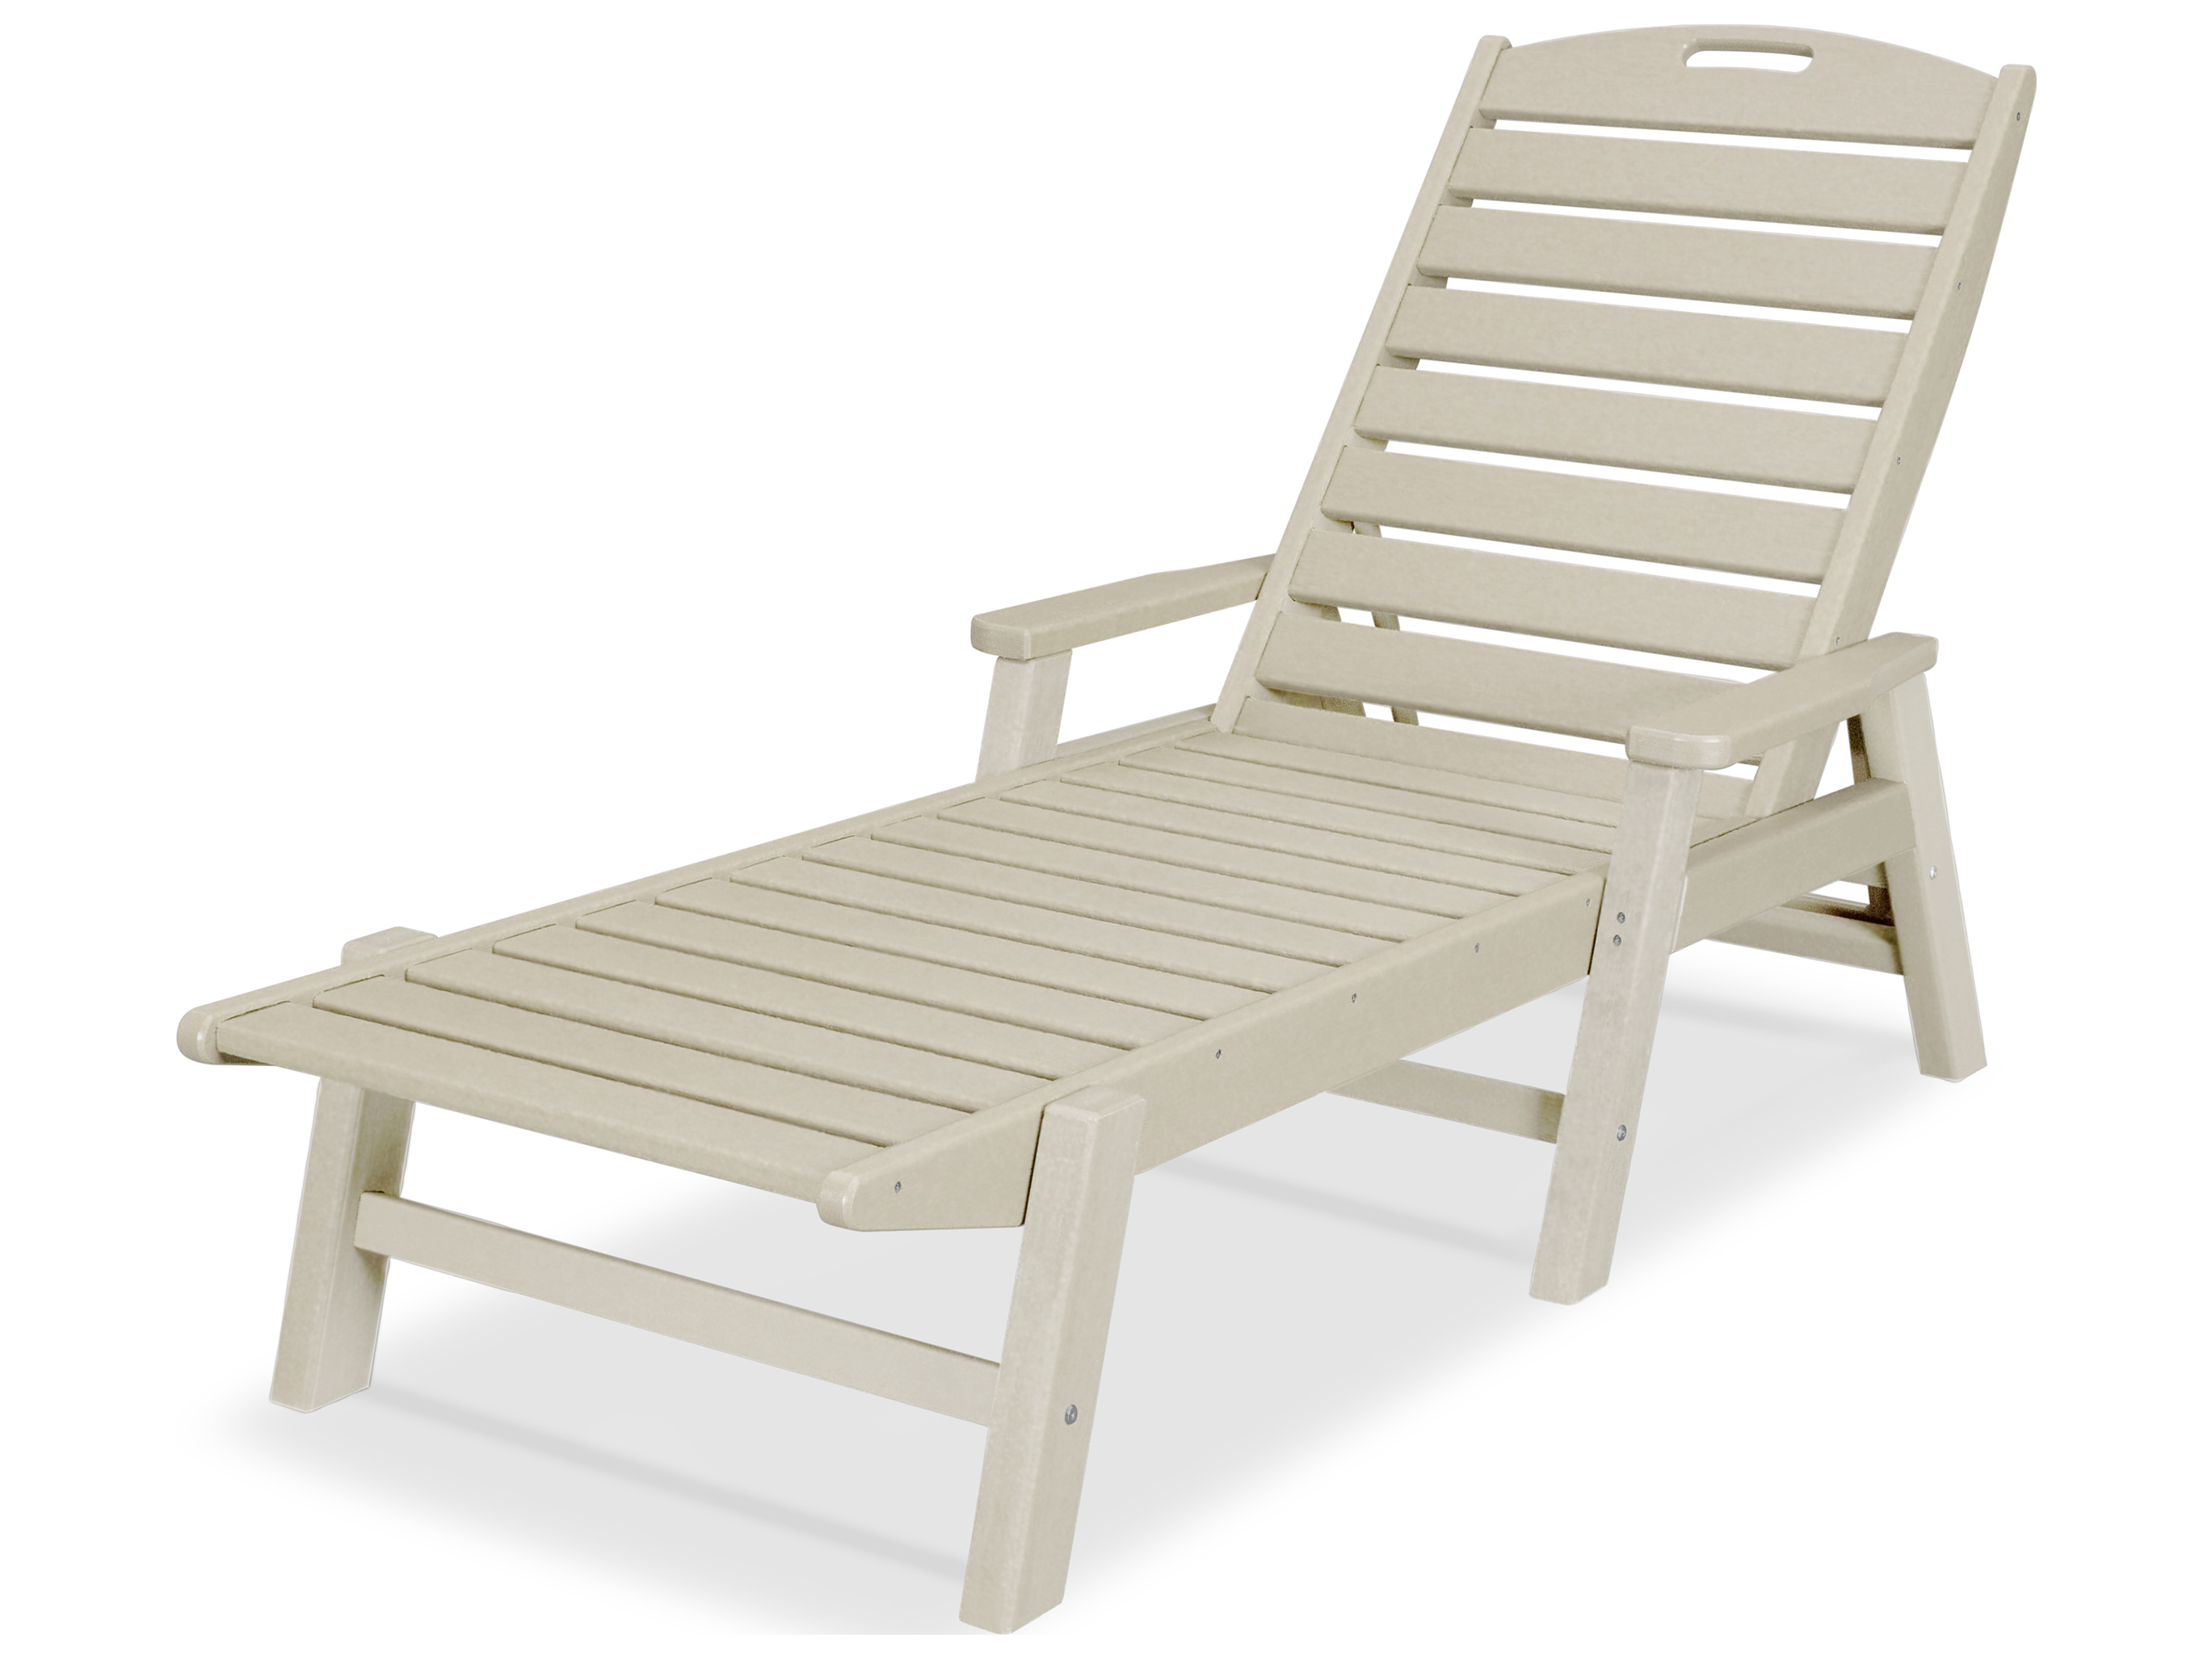 Polywood Nautical Recycled Plastic Stackable Chaise Ncc2280